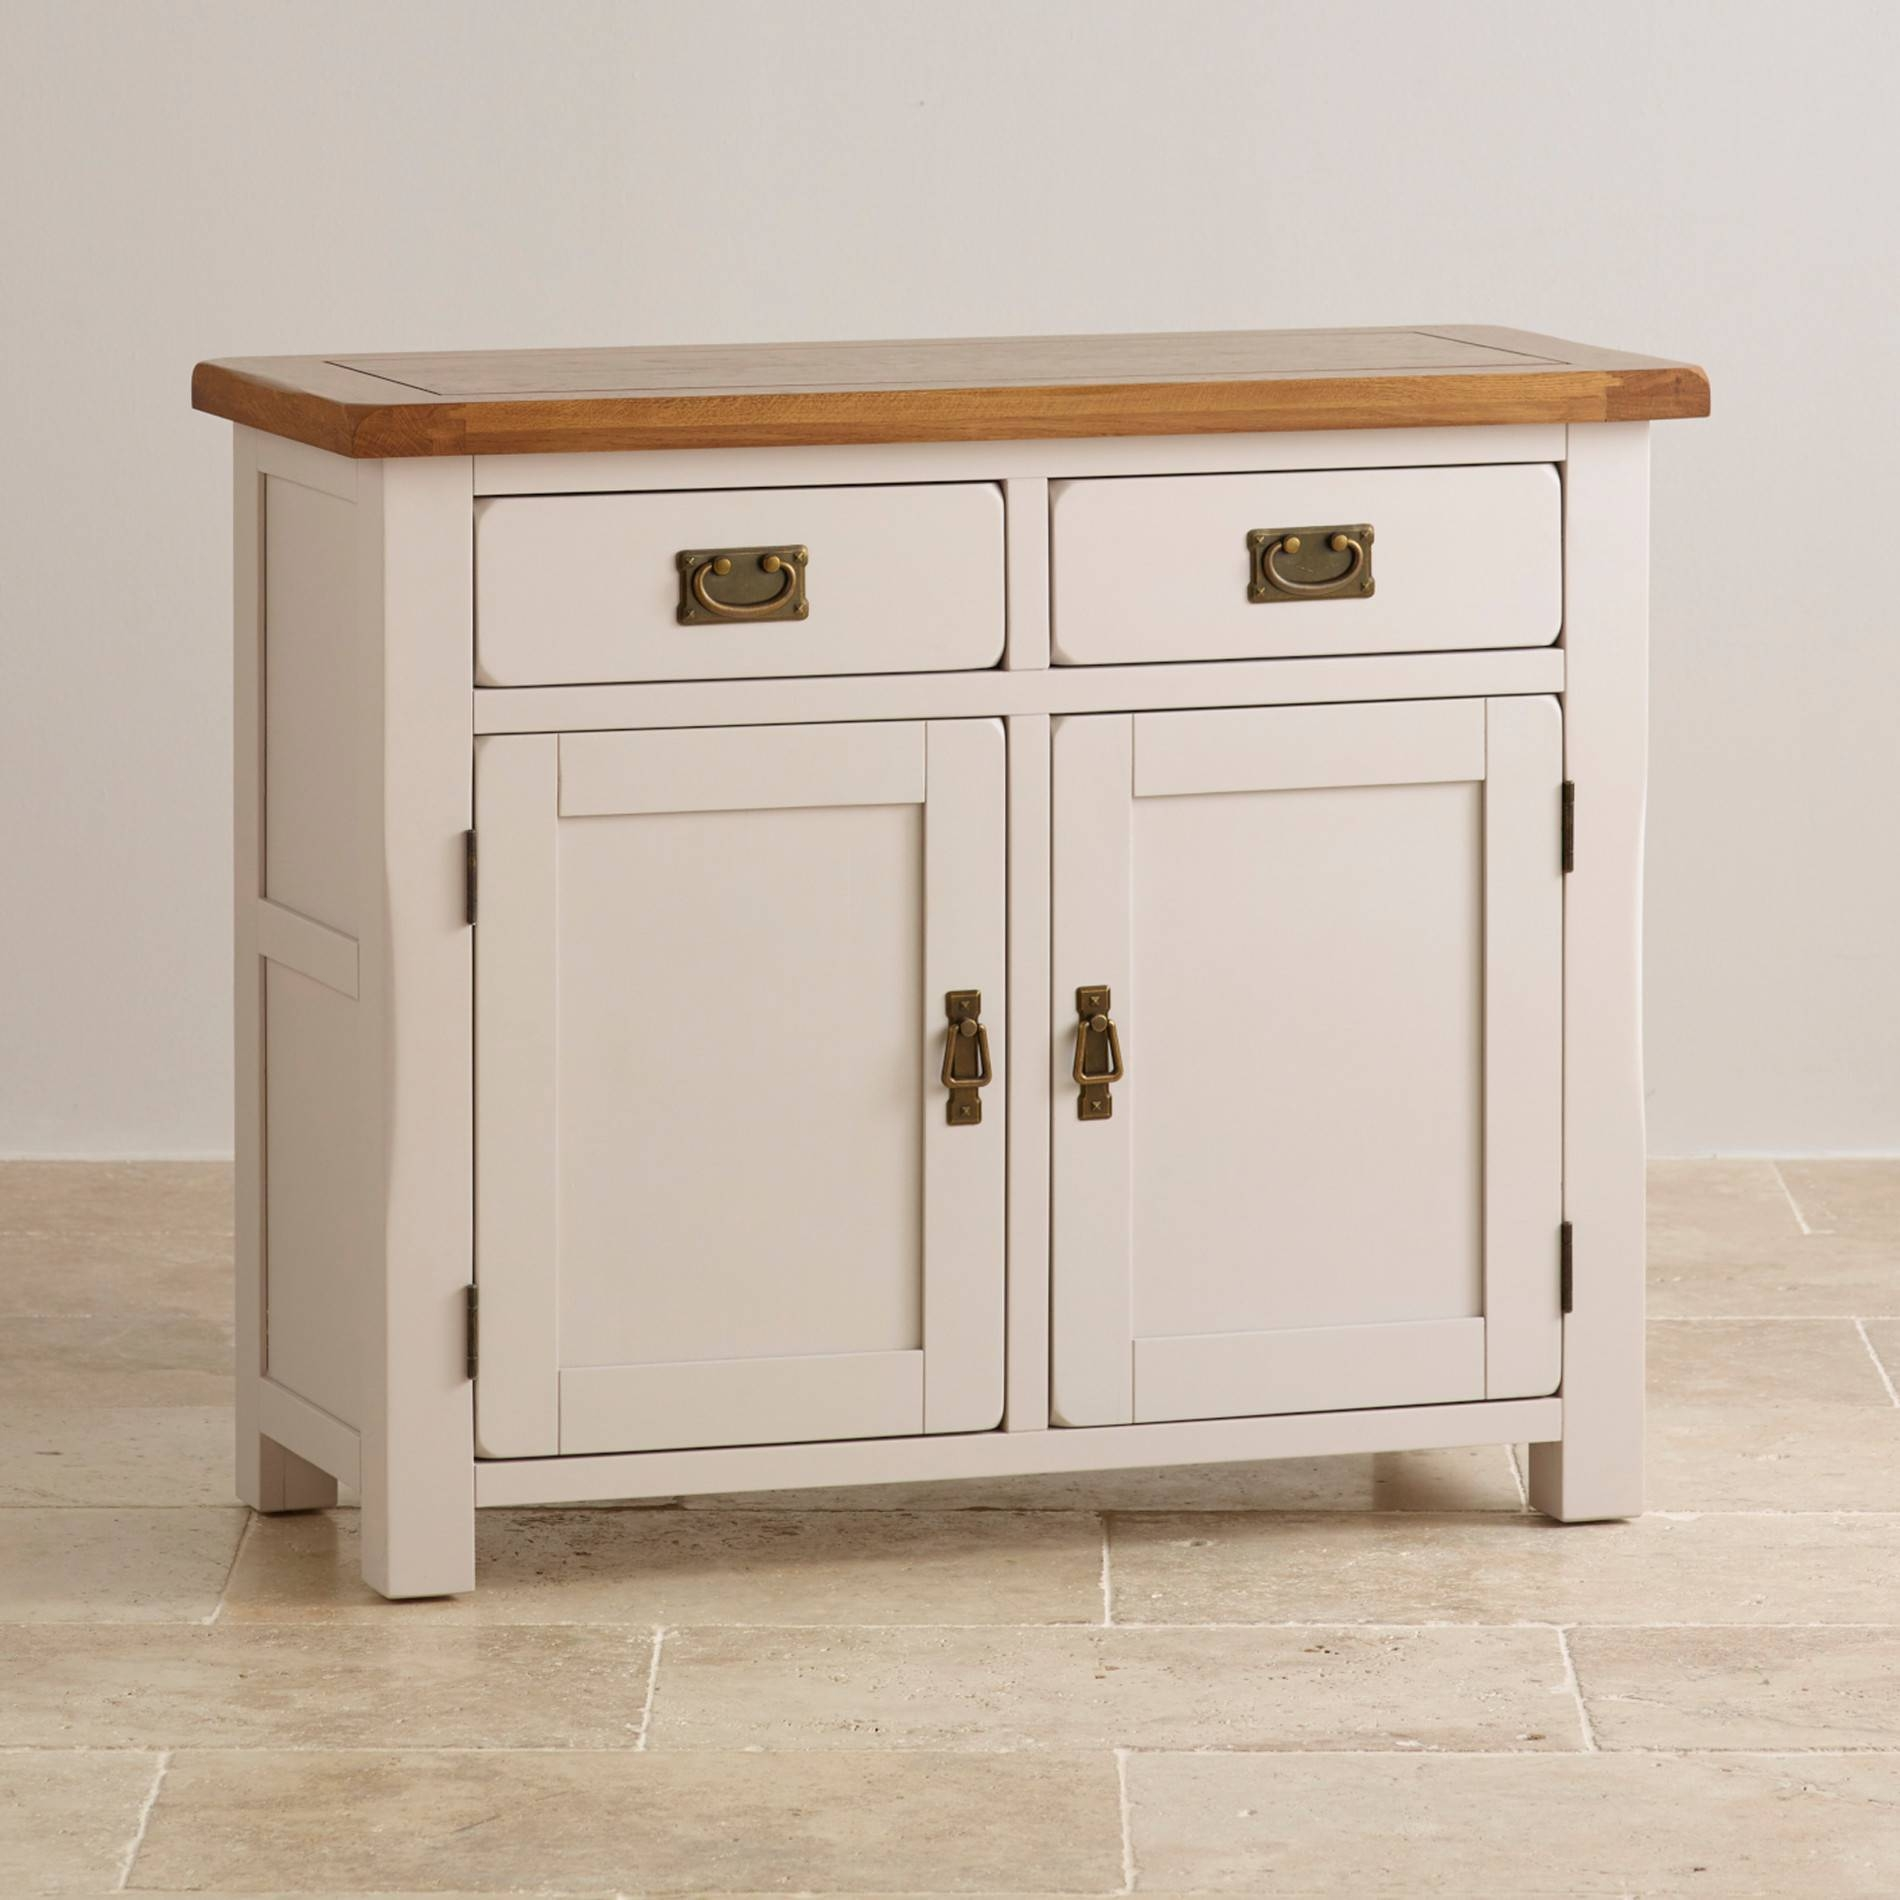 Inspiration about Kemble Small Painted Sideboard In Rustic Solid Oak Within Small Sideboards With Drawers (#15 of 15)